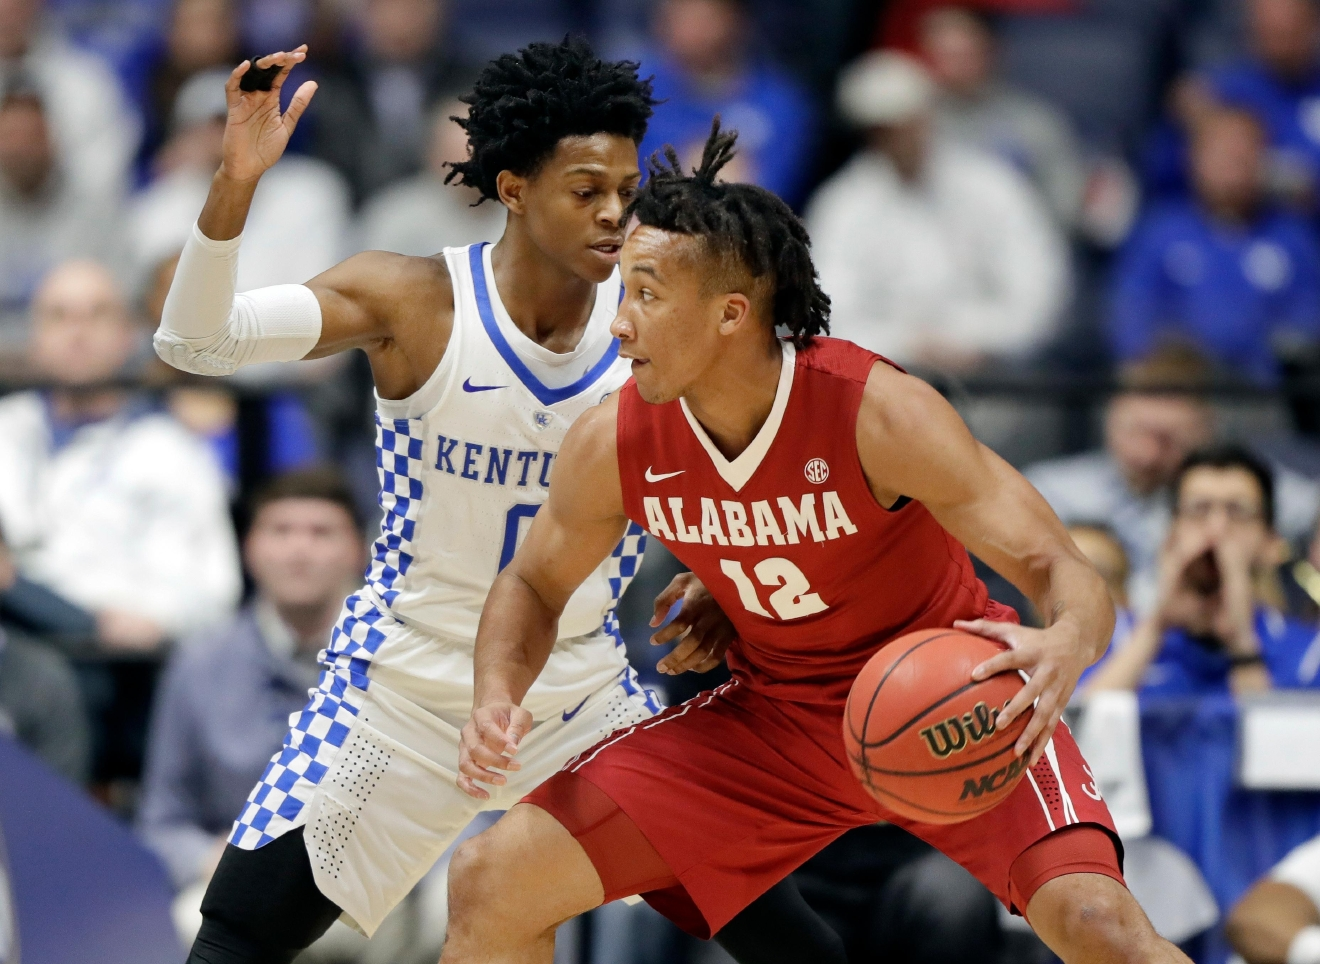 Alabama guard Dazon Ingram (12) is guarded by Kentucky's De'Aaron Fox (0) in the first half of an NCAA college basketball game in the semifinals of Southeastern Conference tournament Saturday, March 11, 2017, in Nashville, Tenn. AP Photo/Wade Payne)